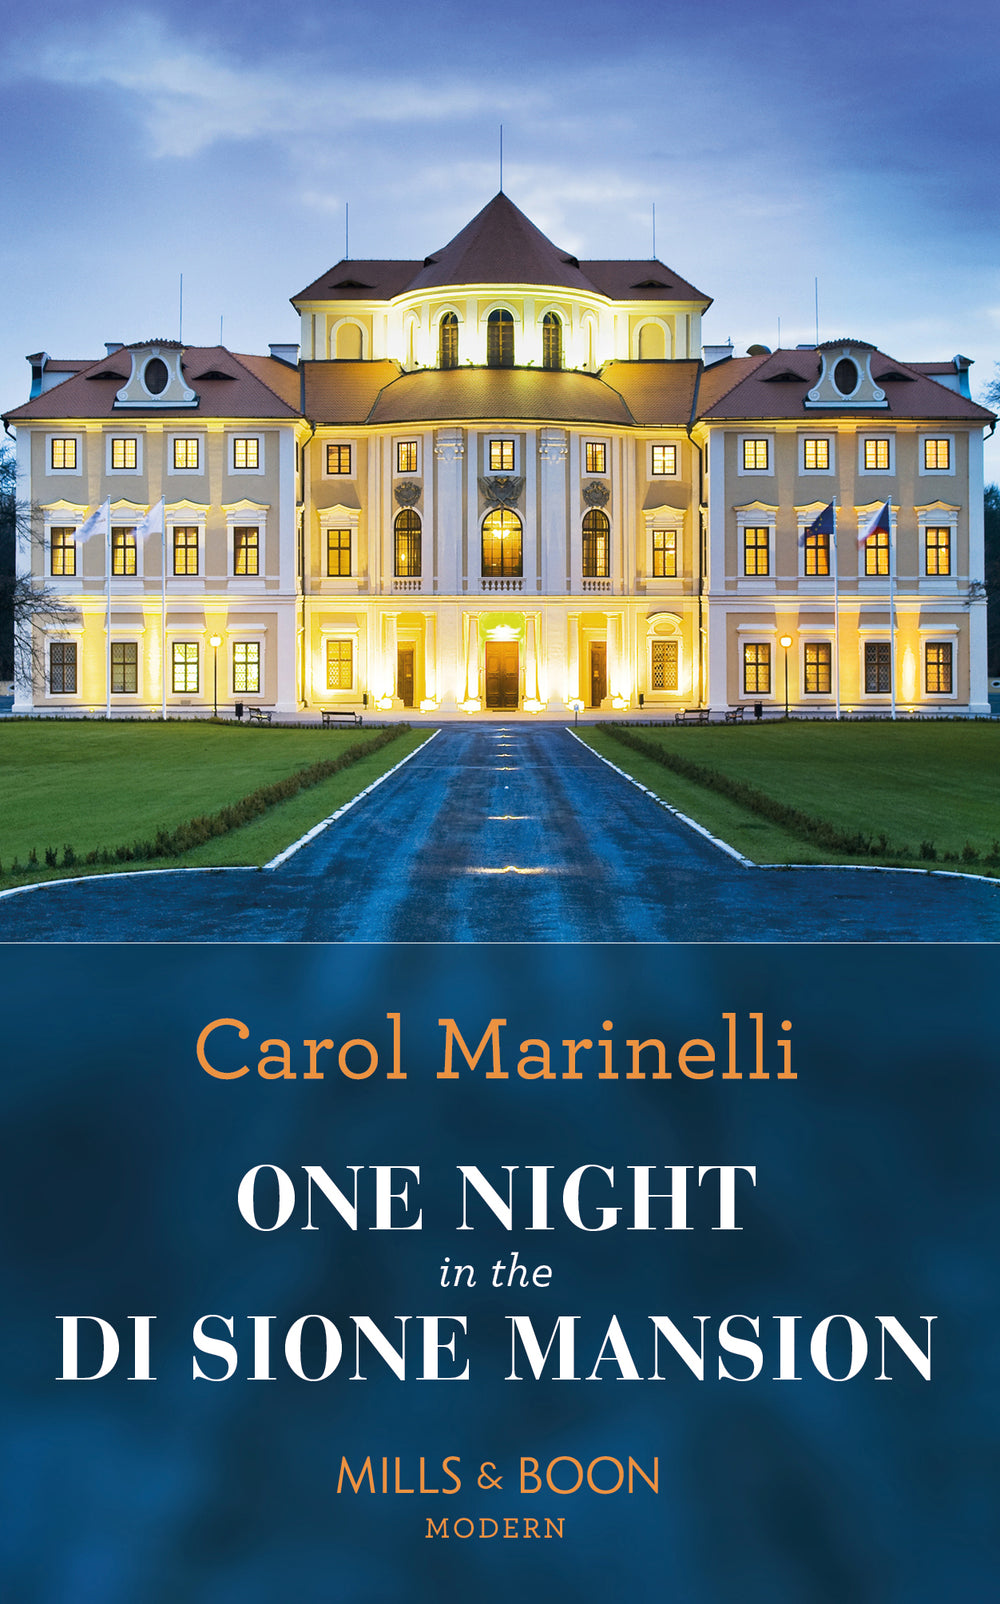 One Night in the Di Sione Mansion - Chapter 9